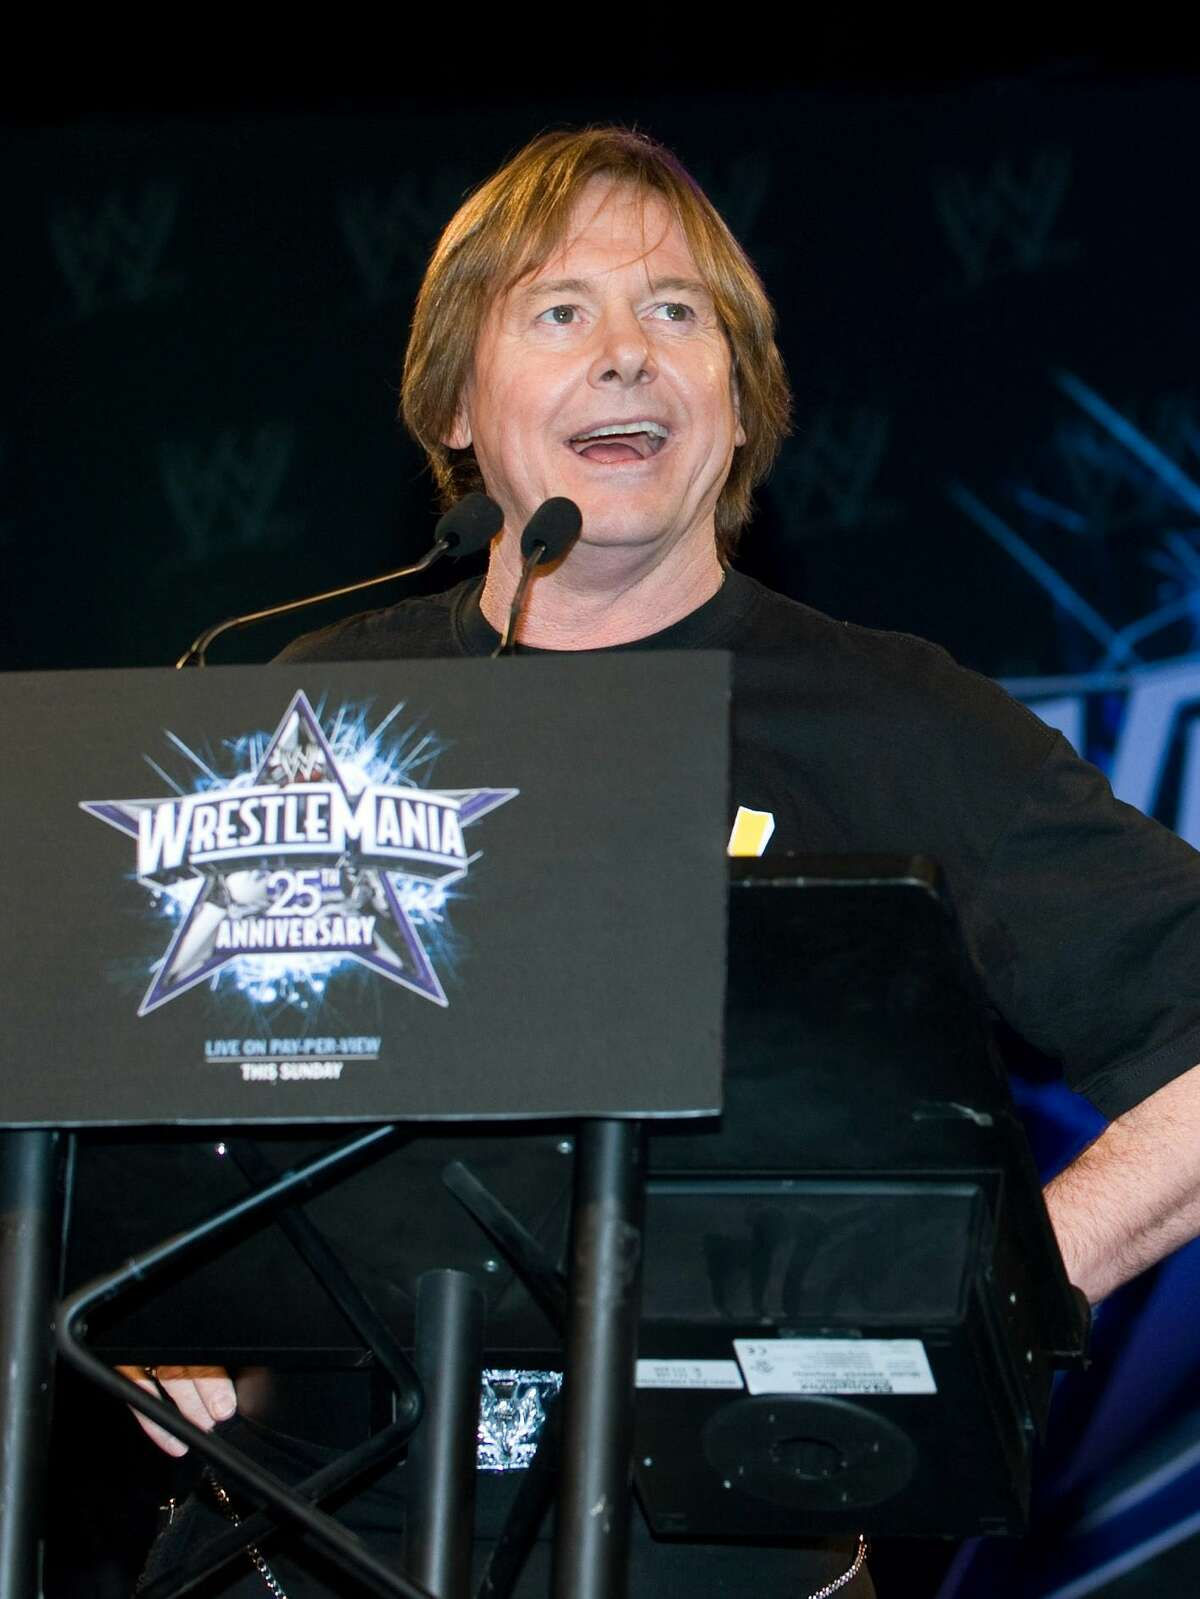 In this March 31, 2009, file photo, former professional wrestler Roddy Piper attends the 25th anniversary of WrestleMania press conference in New York. The WWE said Piper died Friday at 61.